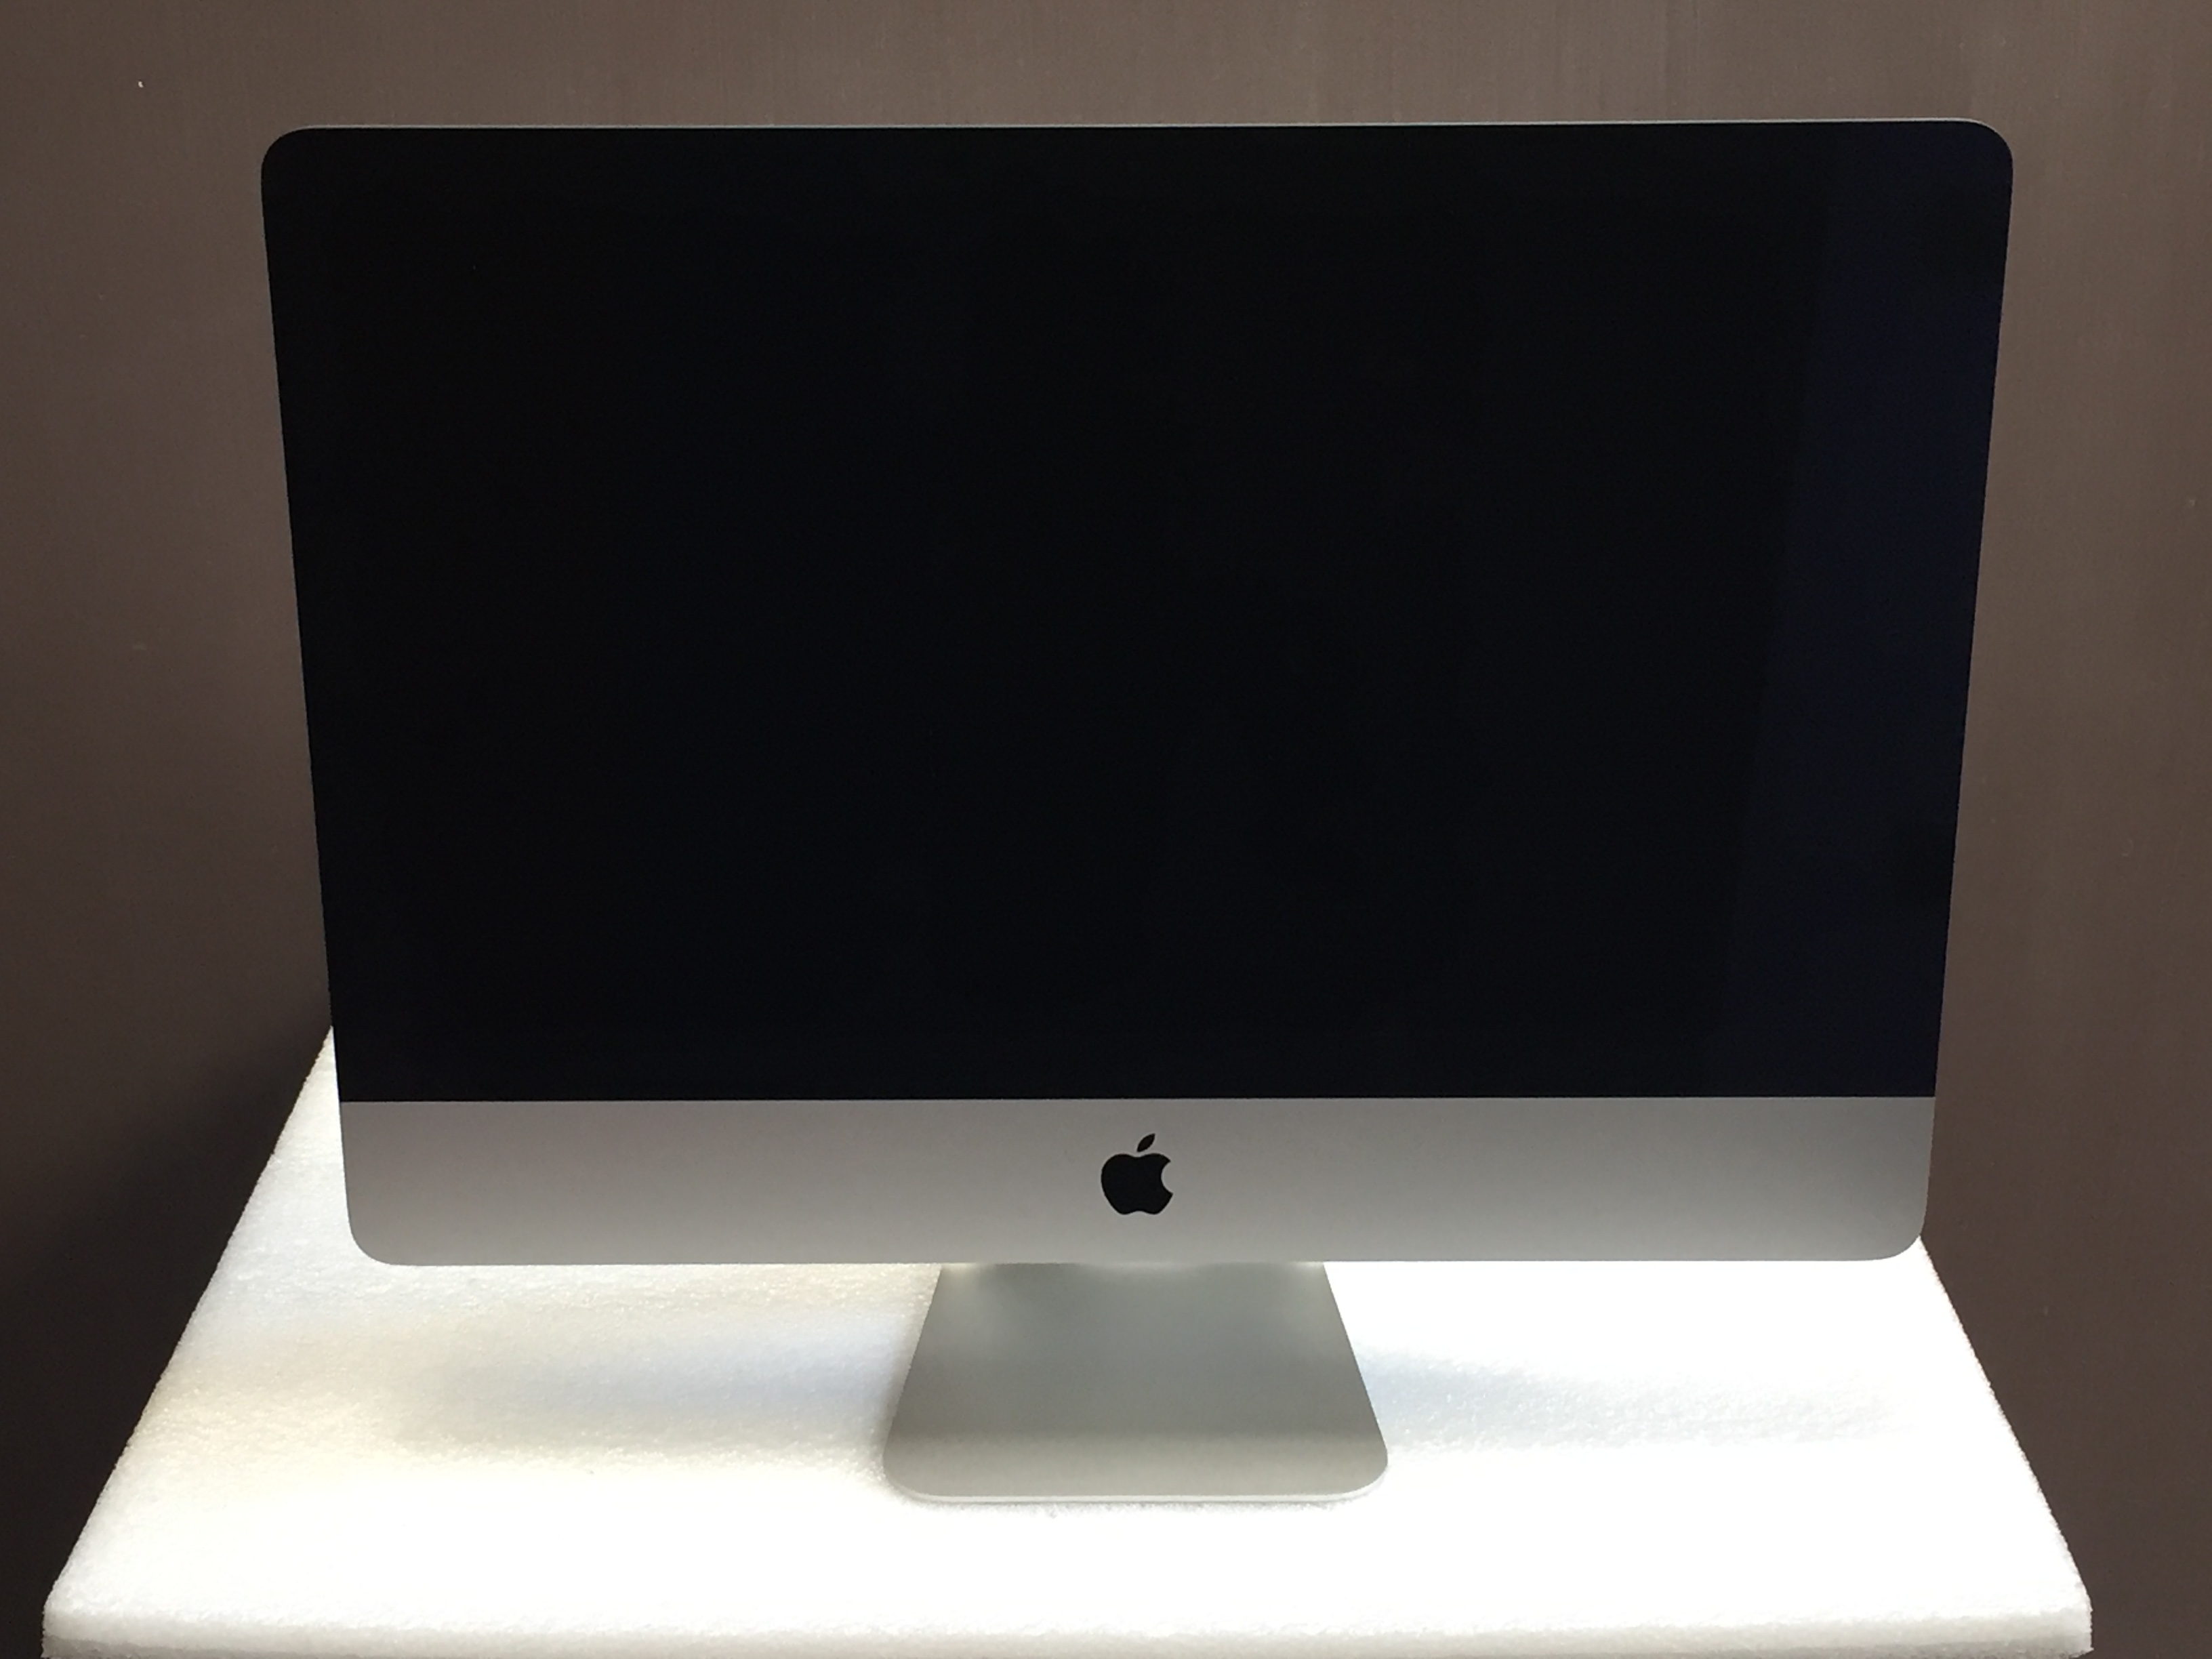 "iMac 21.5"" Late 2013 (Intel Quad-Core i5 2.7 GHz 8 GB RAM 1 TB HDD), Intel Quad-Core i5 2.7 GHz, 8 GB RAM, 1 TB HDD, imagen 1"